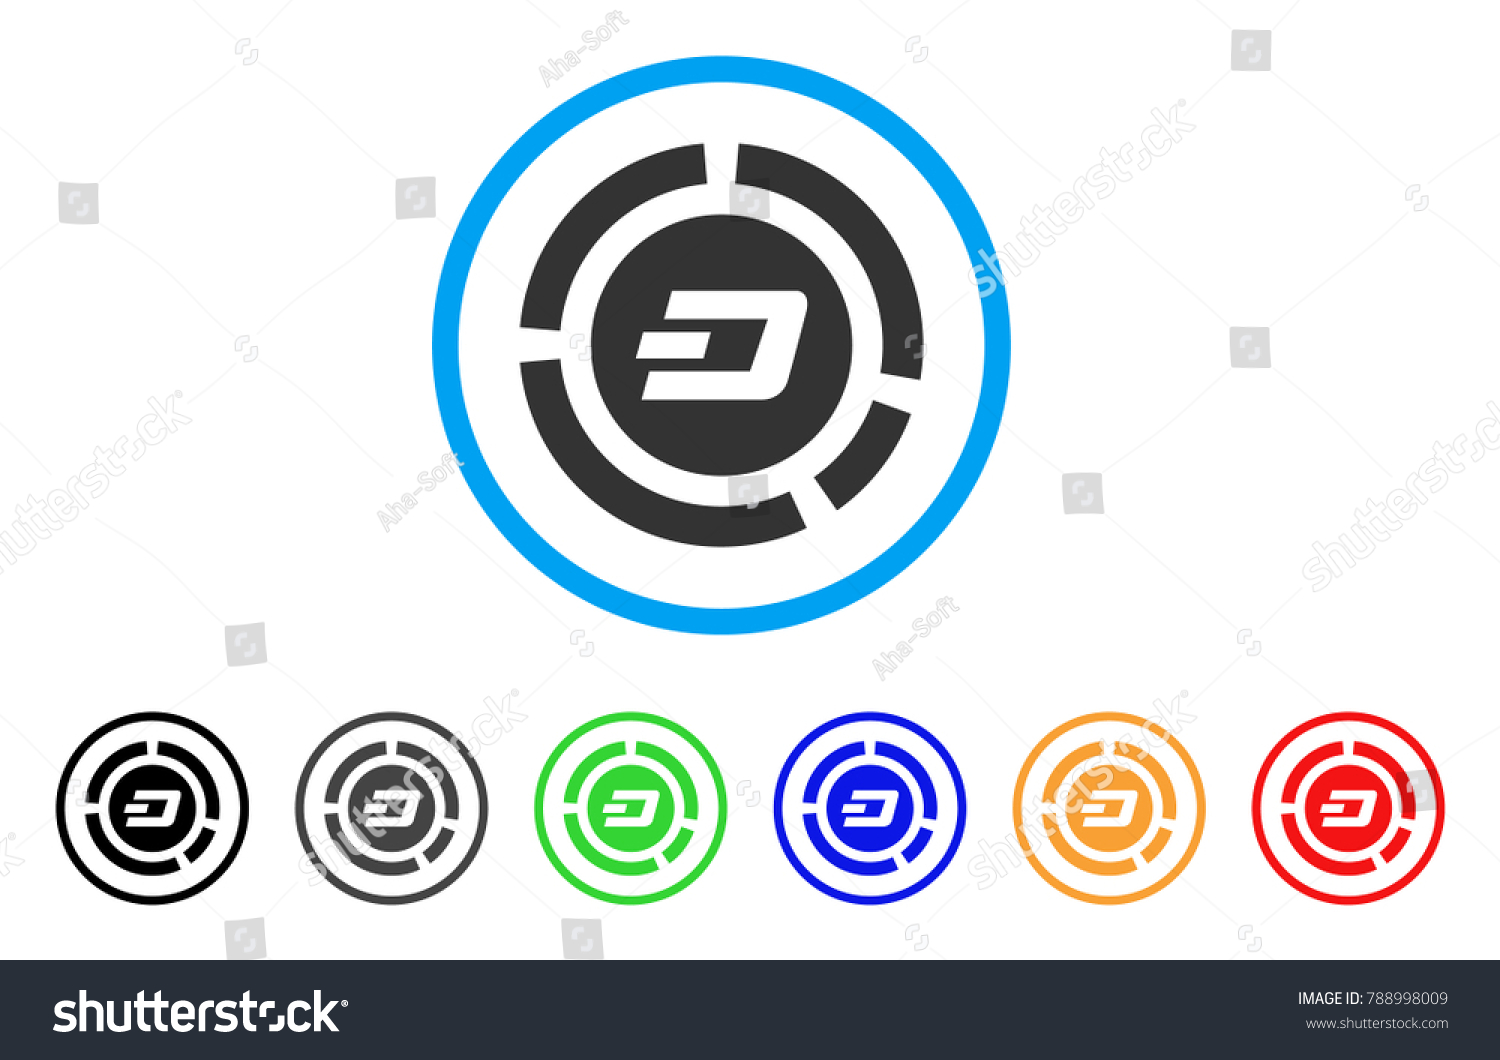 Dash Pie Chart Rounded Icon Style Stock Vector (Royalty Free